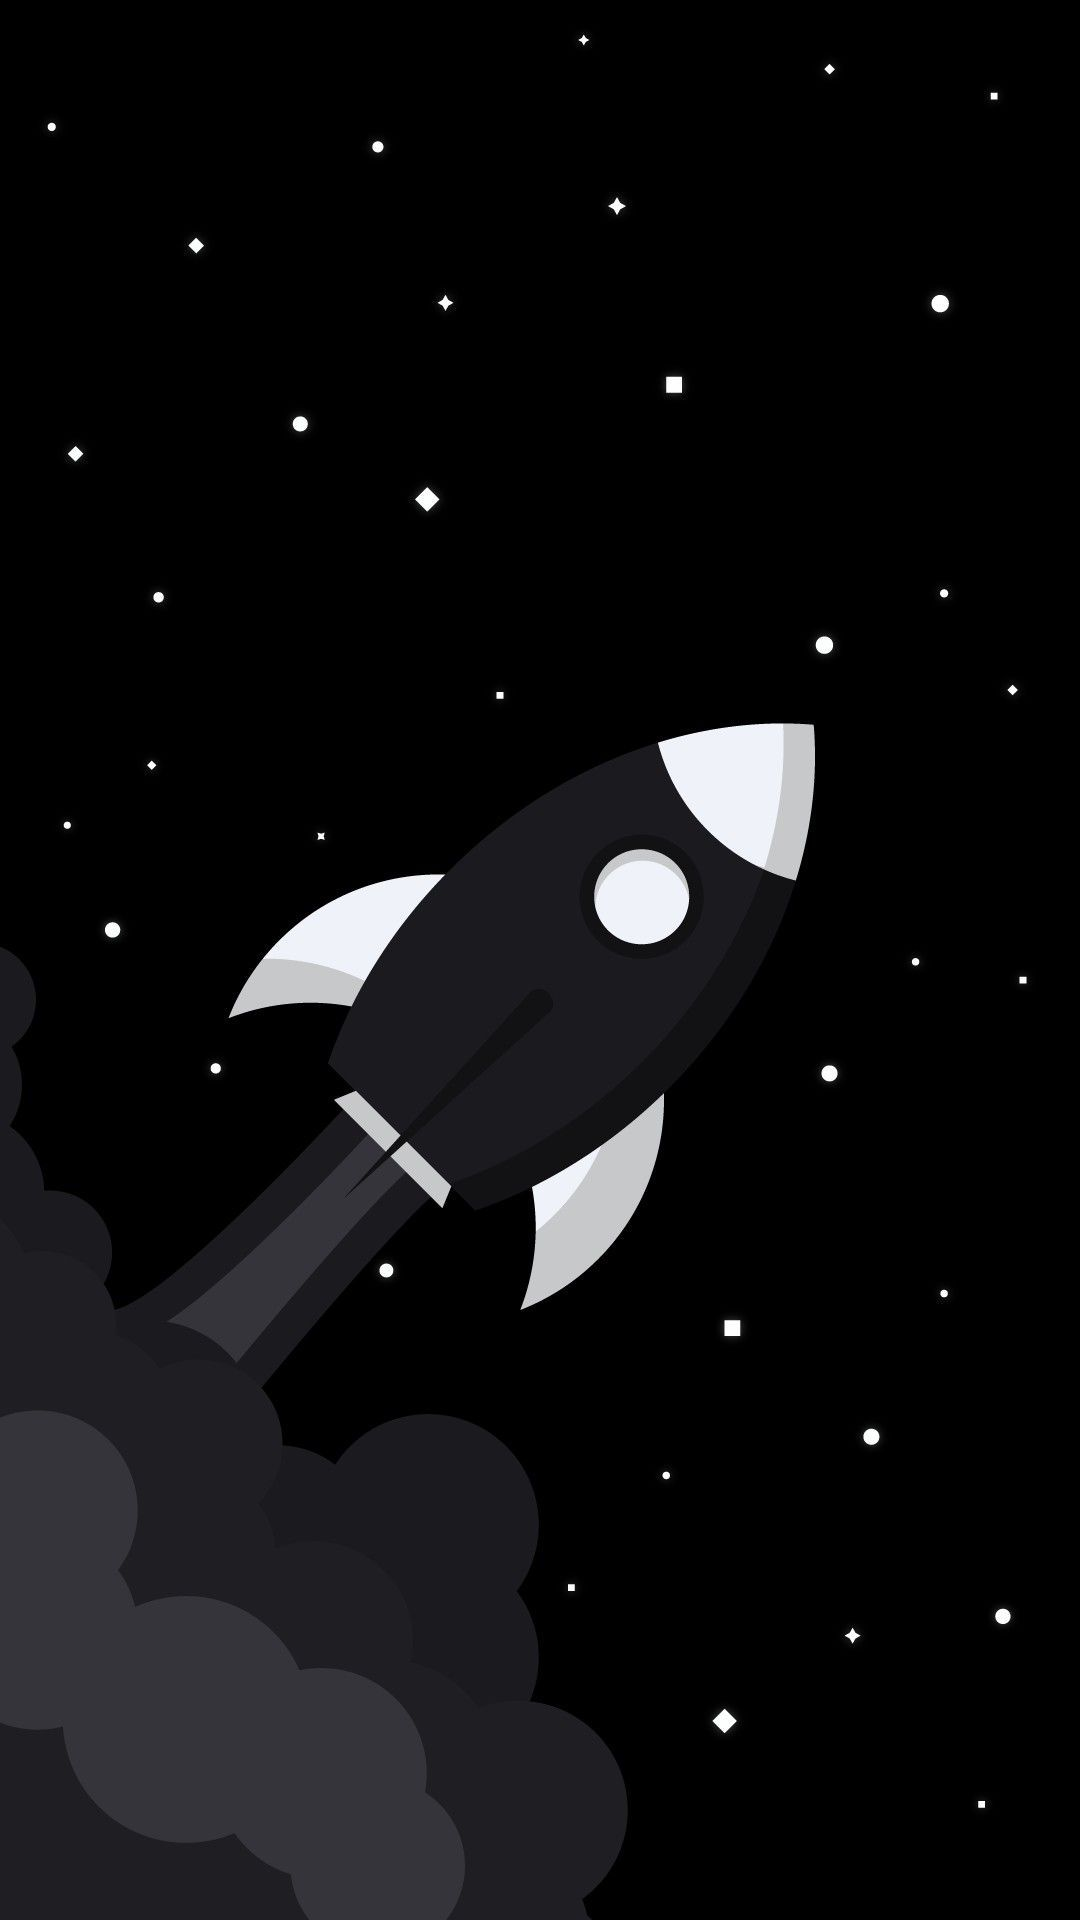 Black Minimalist Rocket Wallpapers - Wallpaper Cave